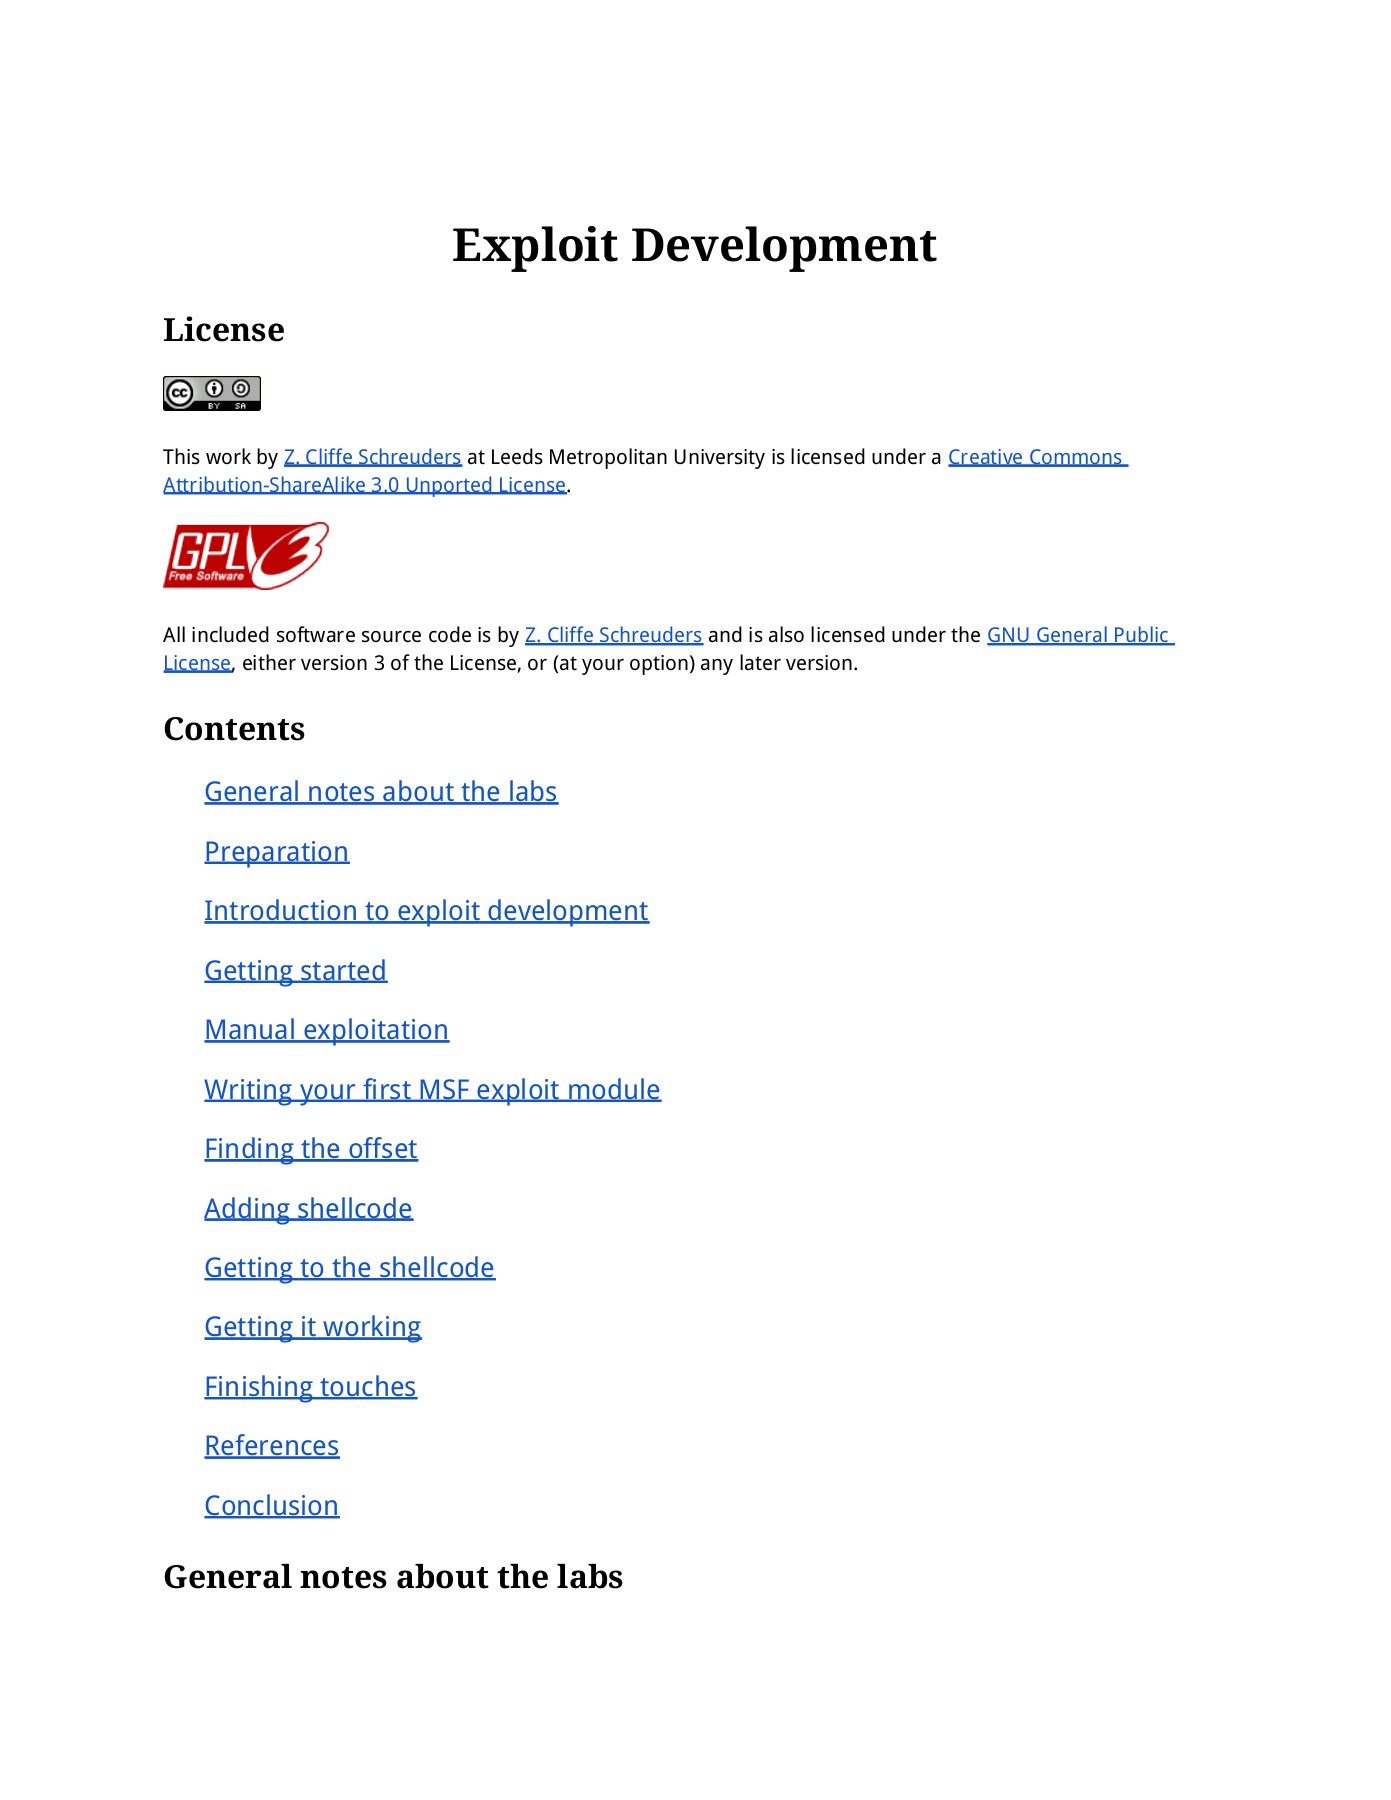 Exploit Development - Z  Cliffe Schreuders Pages 1 - 18 - Text